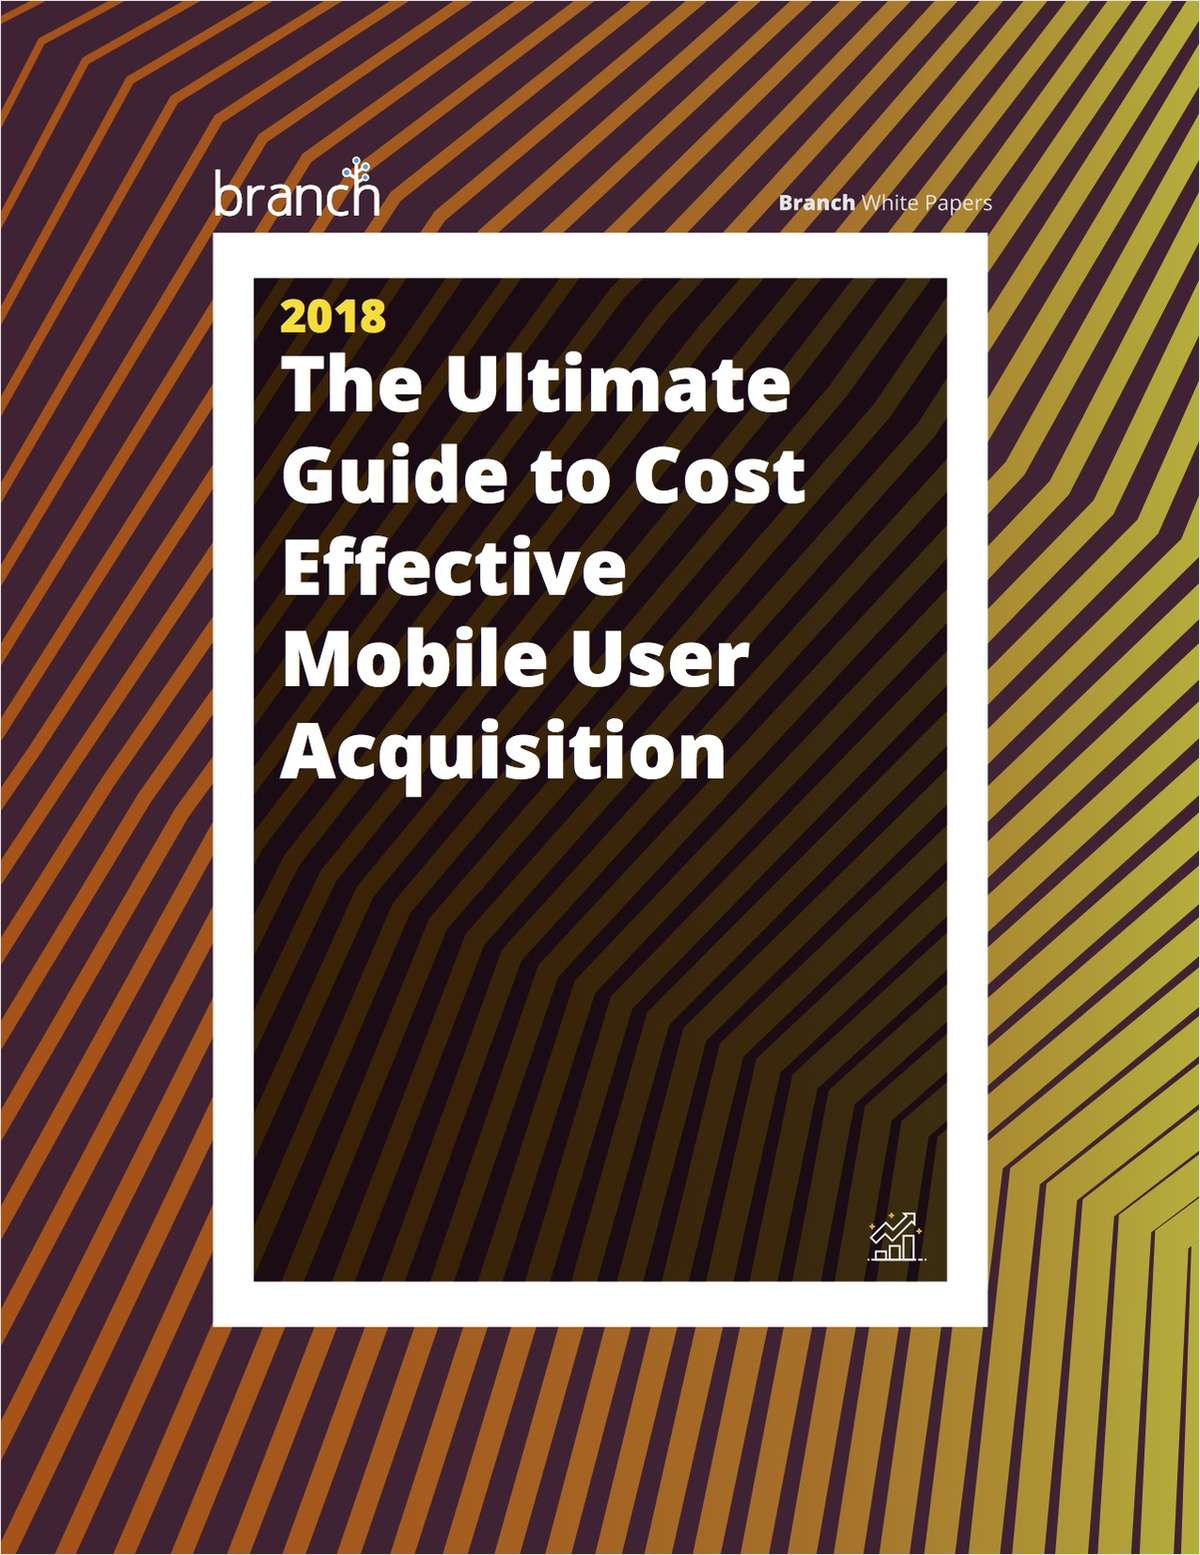 The Ultimate Guide to Cost Effective User Acquisition